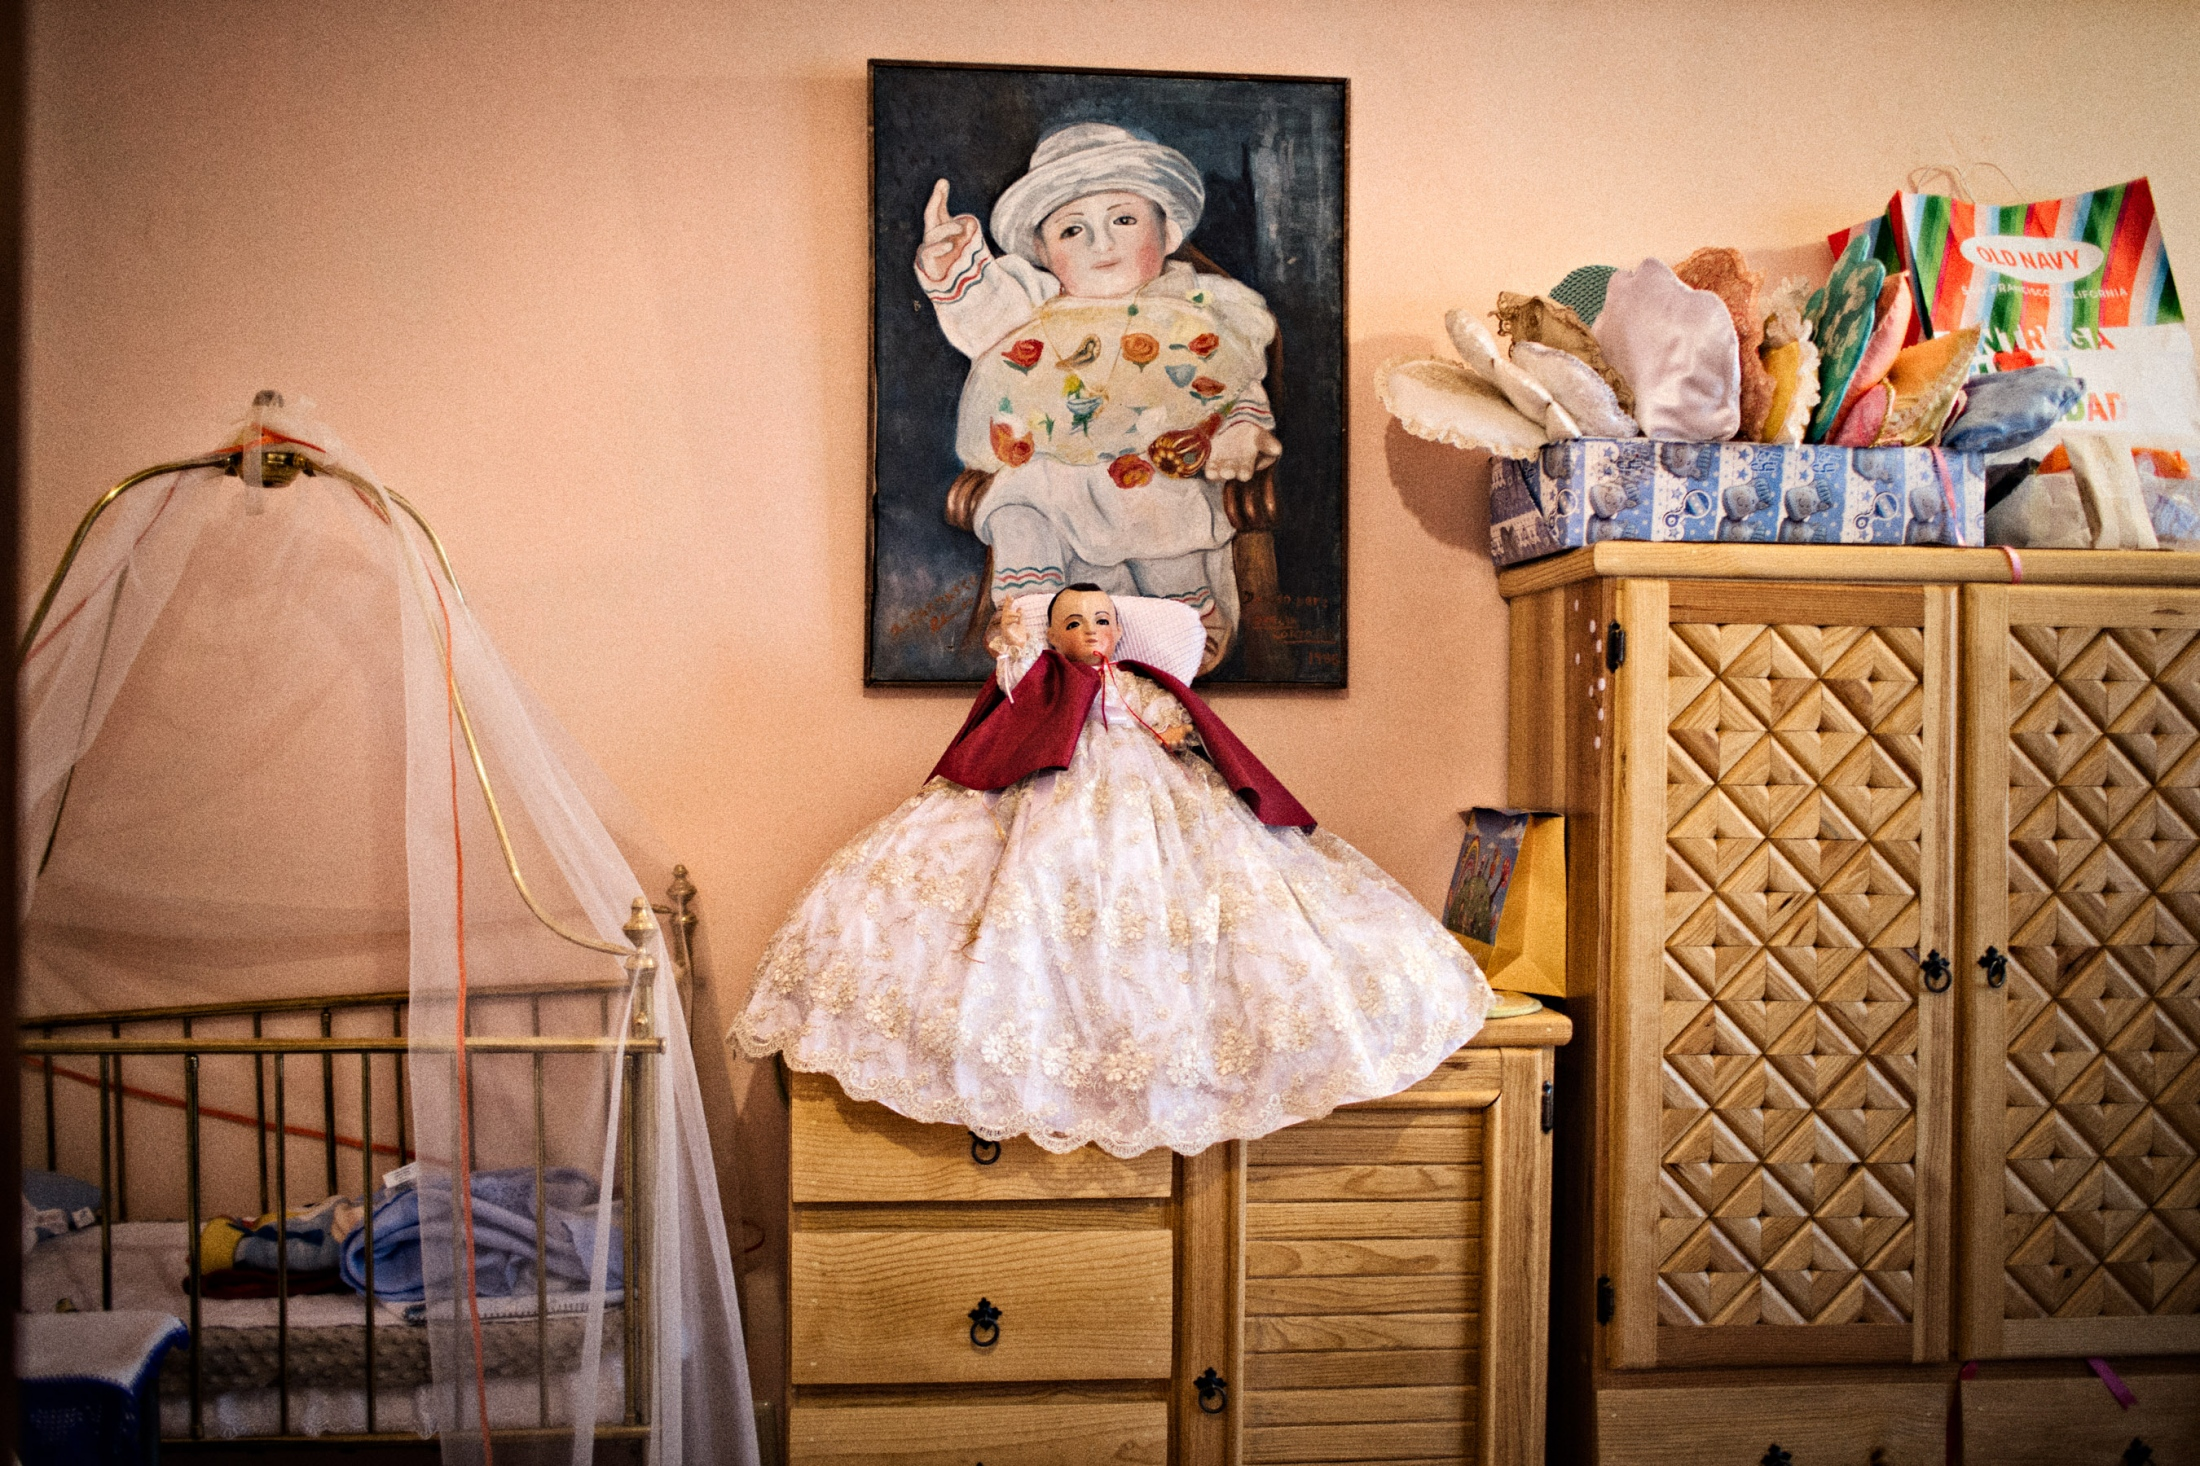 To protect Niñopa's privacy, photography in his bedroom is forbiden. After obtaining special permission from the Majordomo, this photograph was taken with permission which shows the crib in which Niñopa sleeps every night and partially shows his wardrobe.